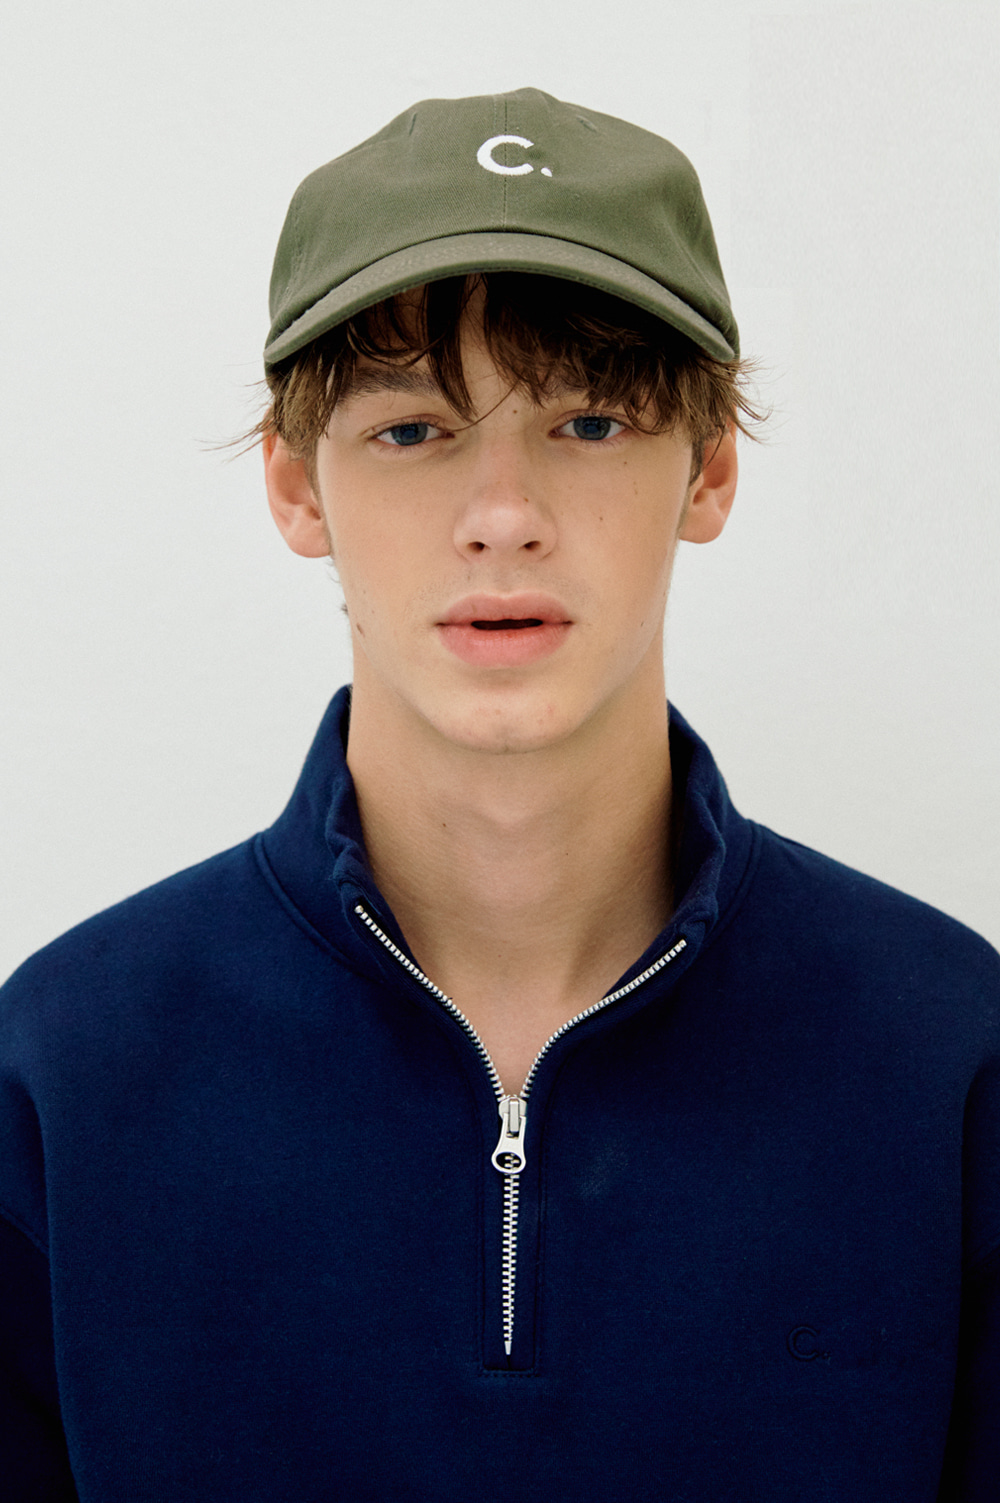 Basic Fit Ball Cap (Khaki)